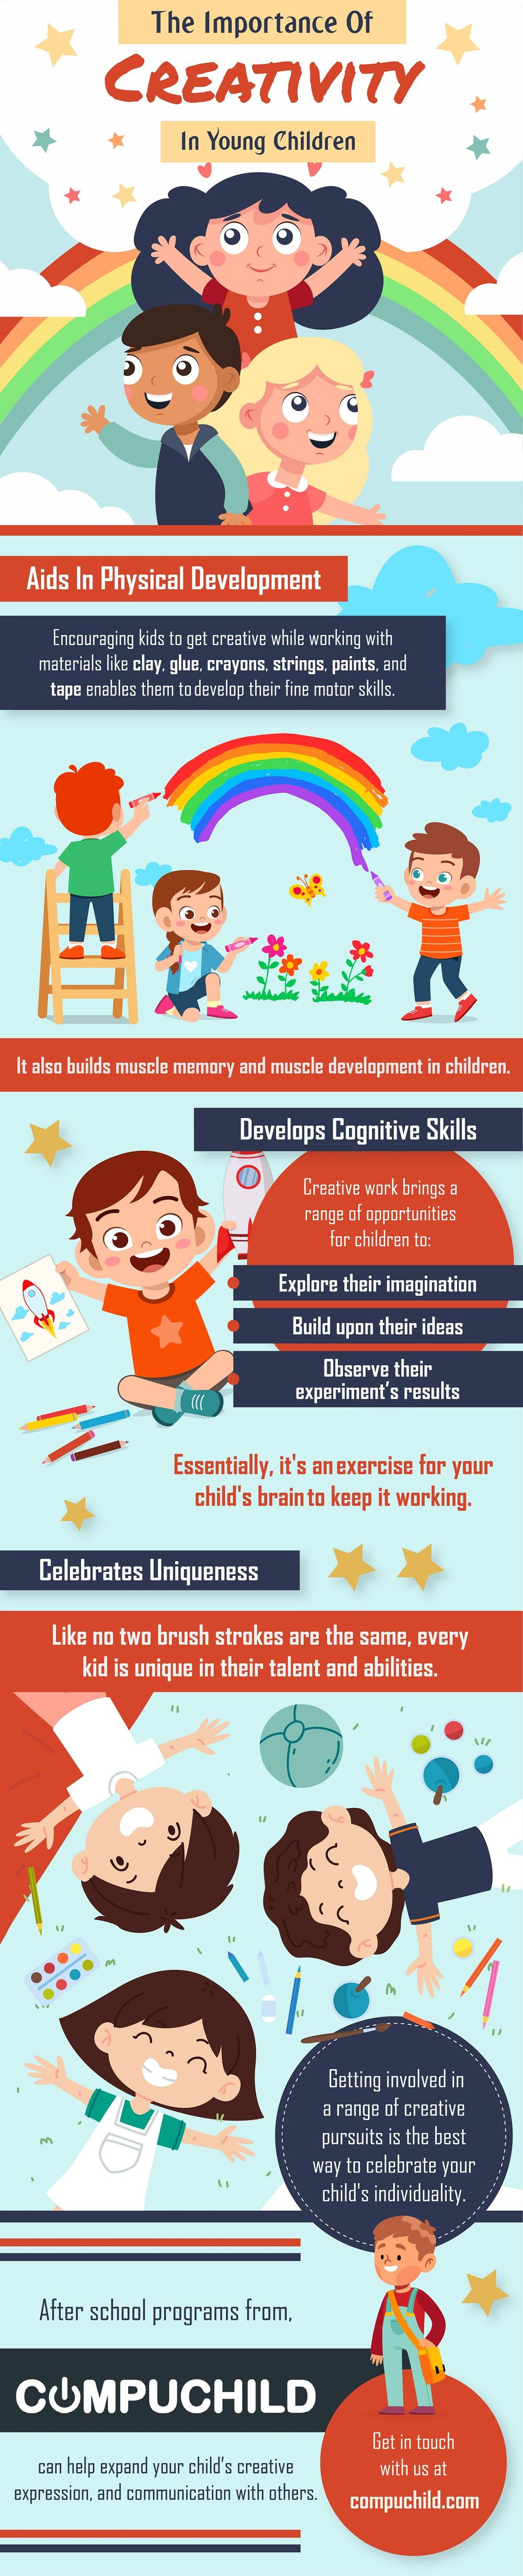 The importance of creativity in young children.jpg